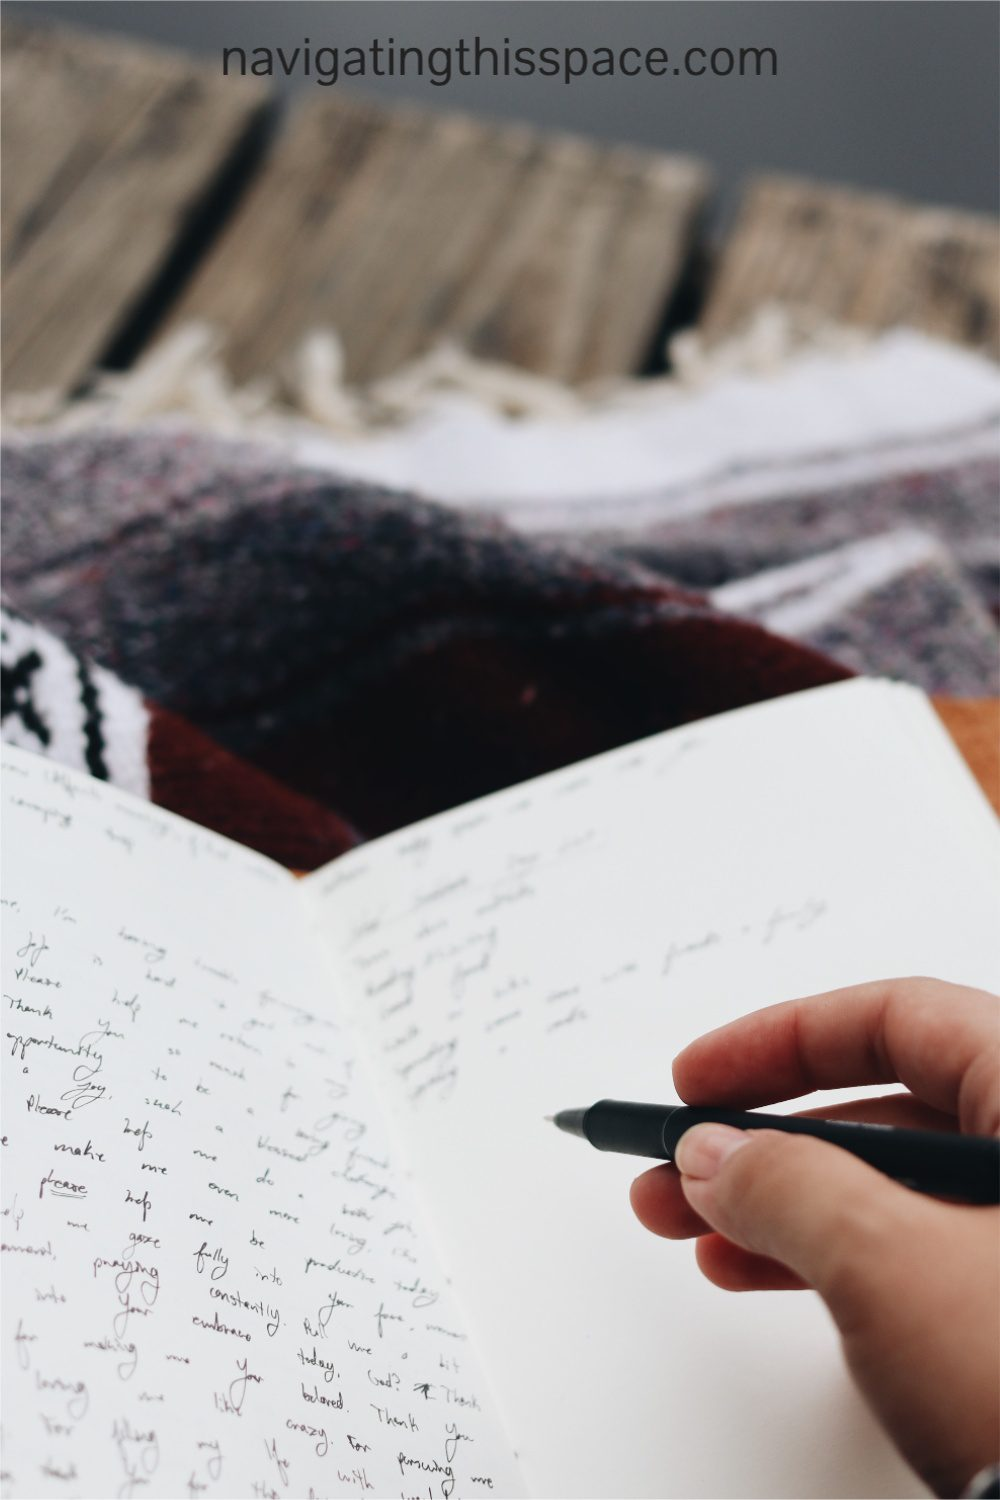 a hand writing in a journal using the tips for daily journaling